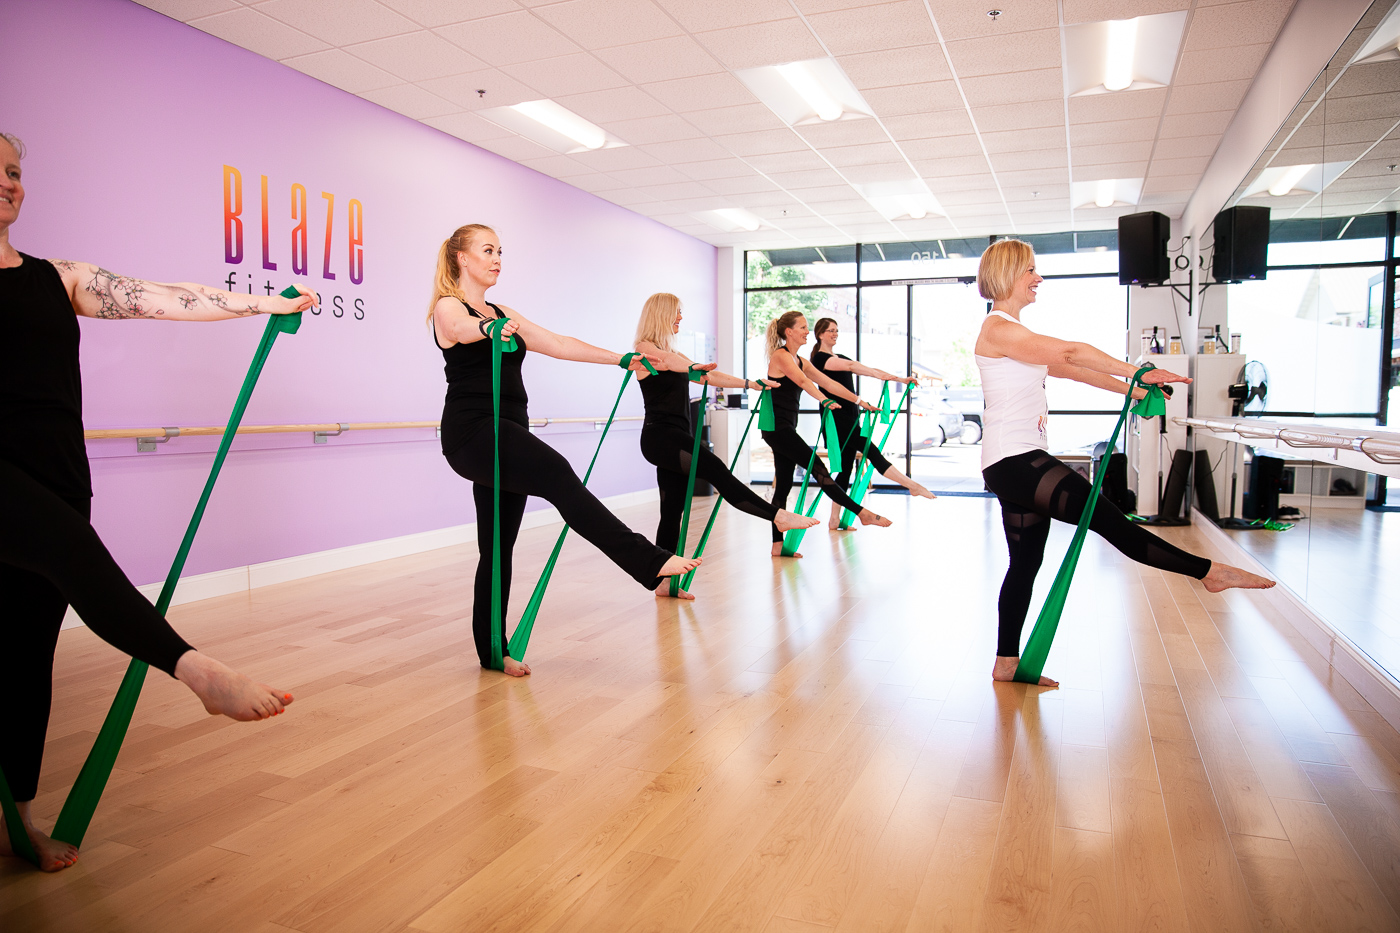 Ballet Barre Blaze Fitness Sherwood Oregon